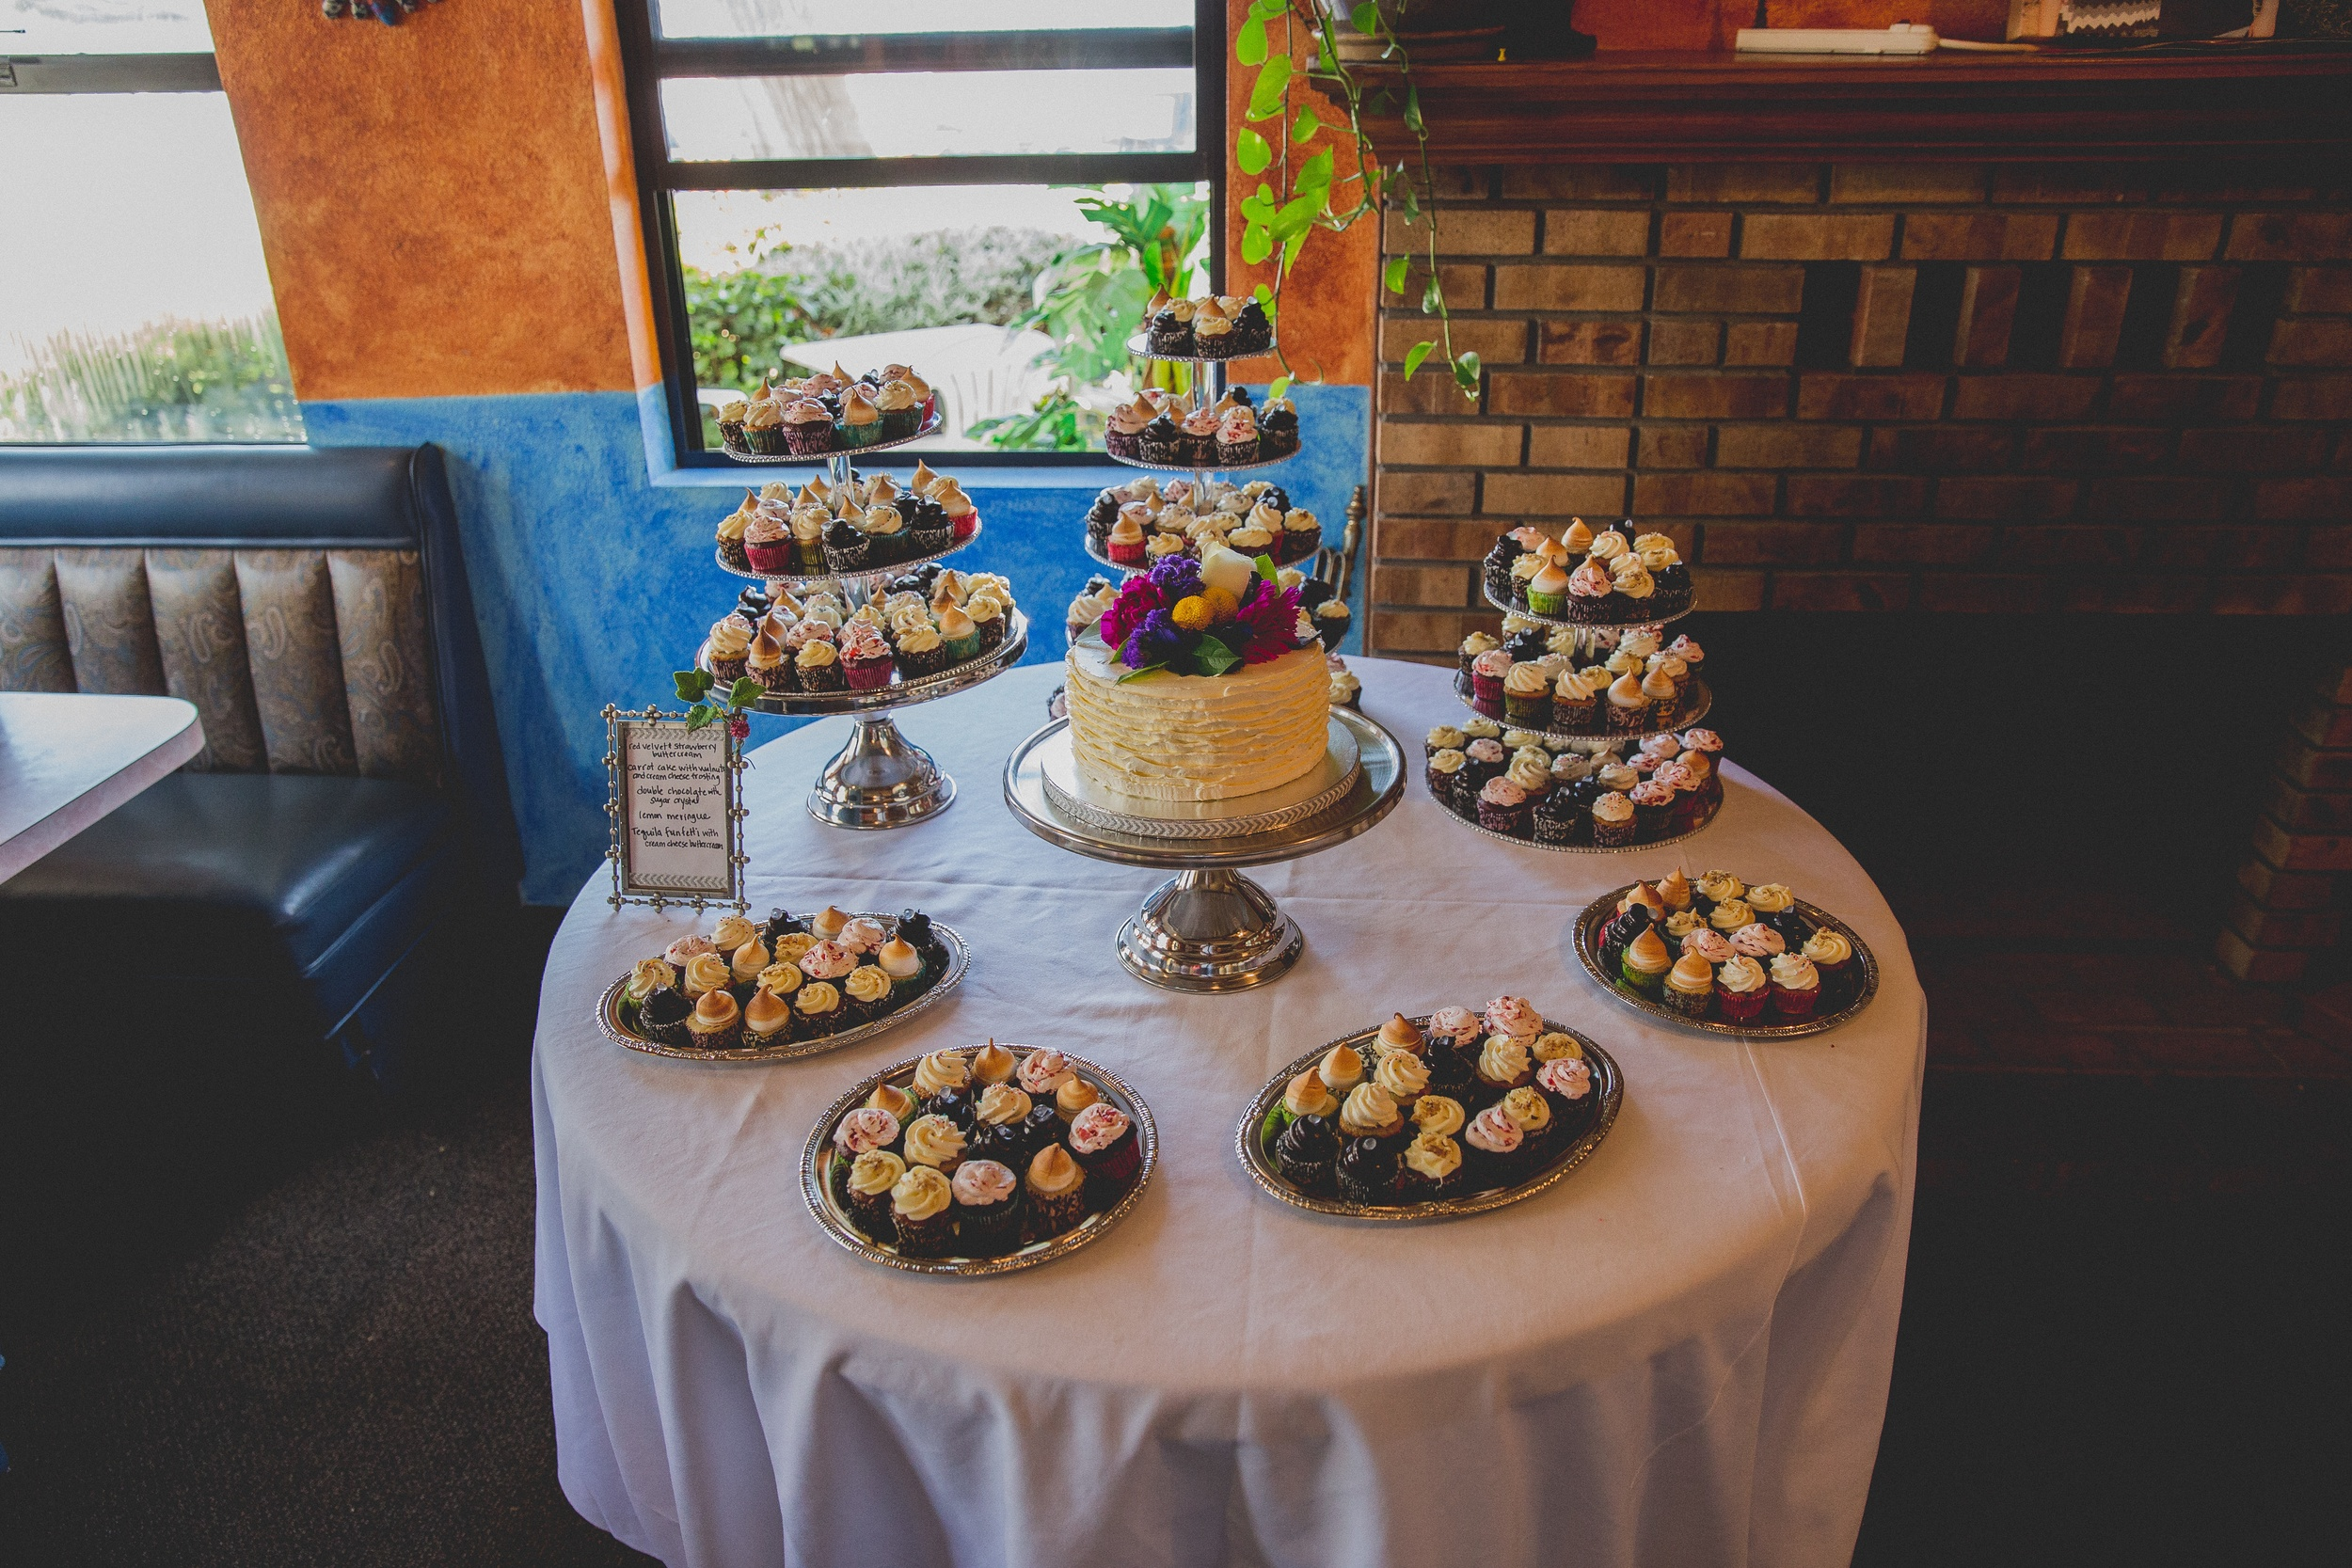 300 mini cupcakes and a Tequila Funfetti cutting cake. Photo by Paul Bolger.